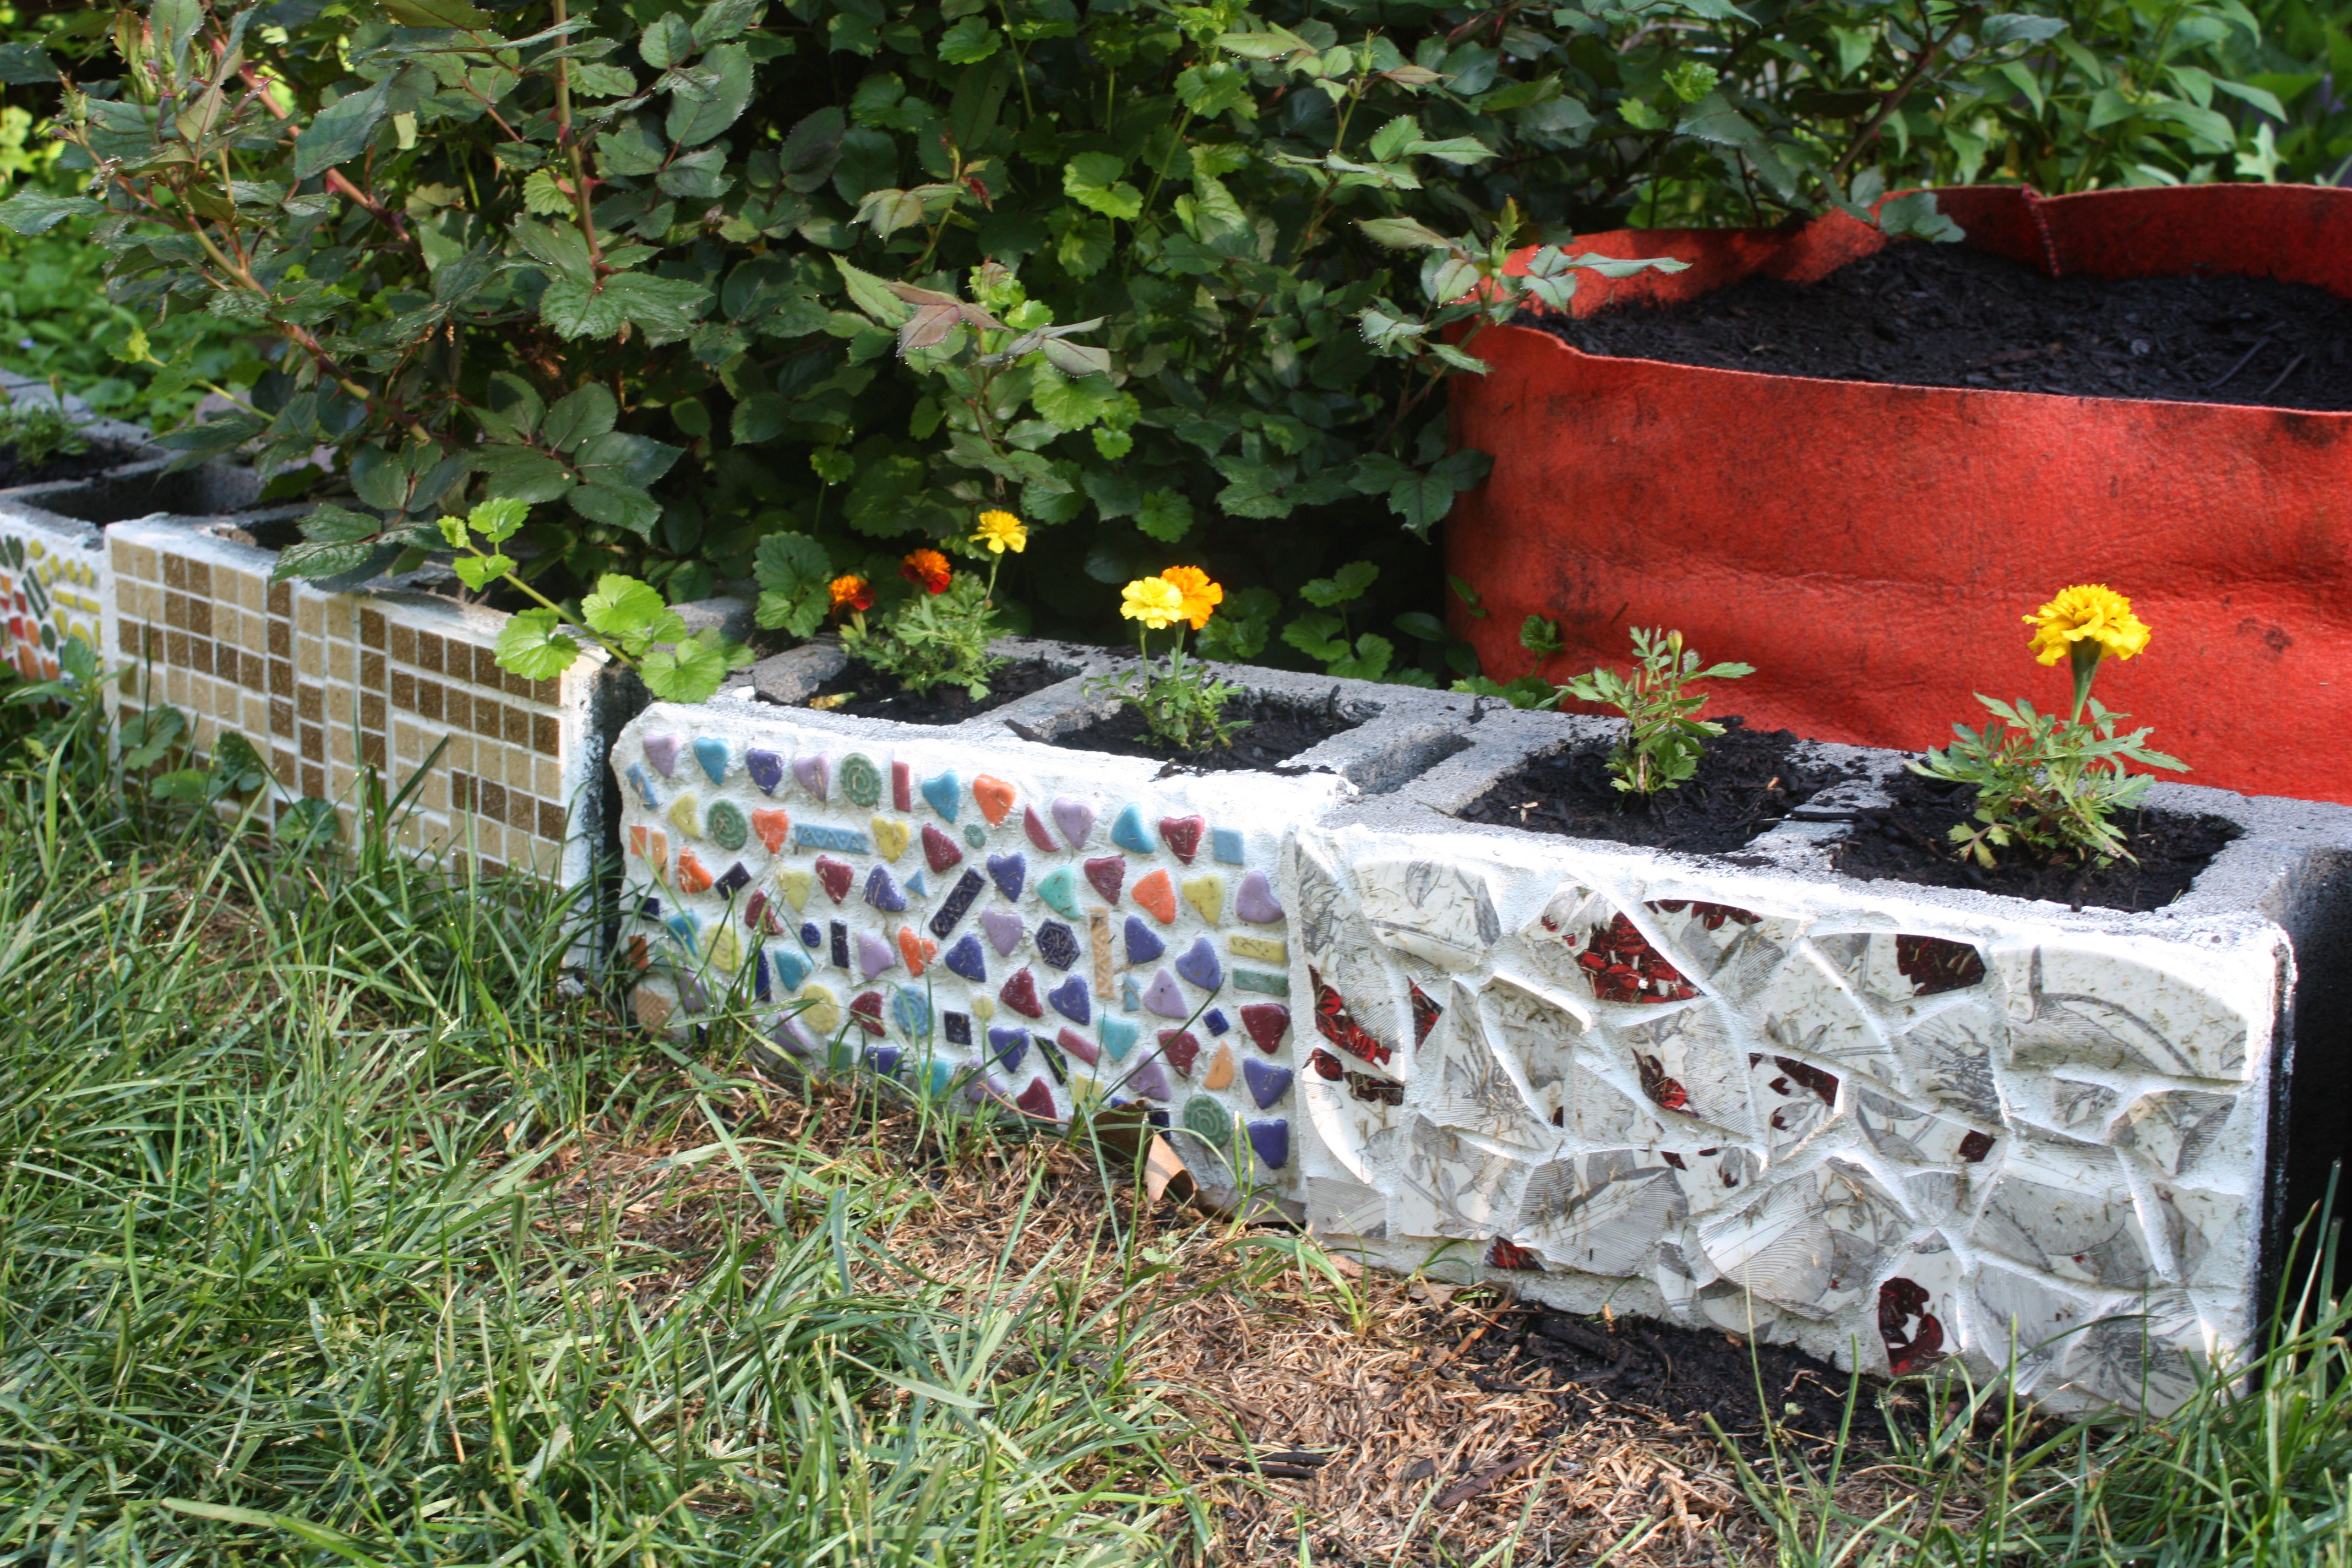 Cinderblock Mosaics Done With Broken Dishes And Tiles Portulaca Marigolds Planted Along Edge Of Back Garden 5 Mosaic Garden Art Mosaic Garden Mosaic Pots